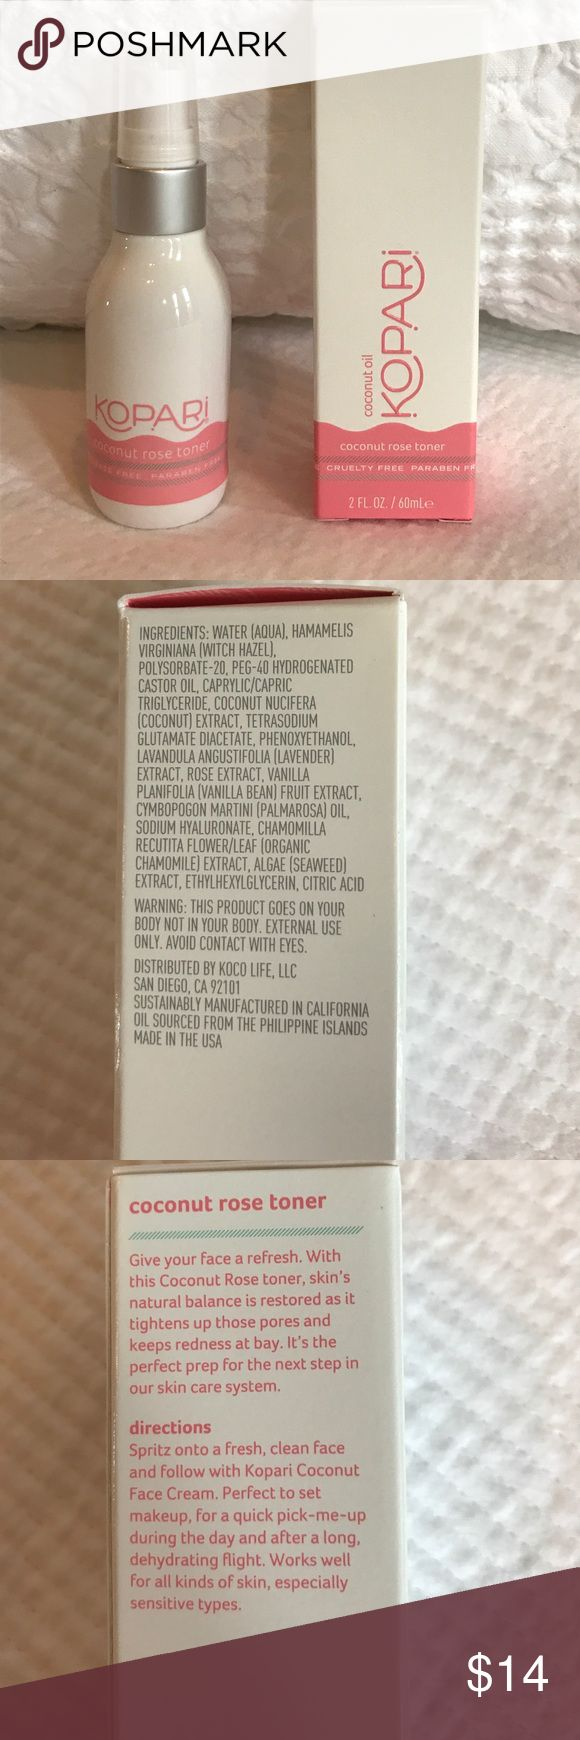 NEW 🌴🌹KOPARI COCONUT ROSE TONER BRAND NEW TRAVEL SIZE 2 FL.OZ. PRICE FIRM UNLESS BUNDLED . NO OFFERS ON BUNDLES PLEASE. 🌴 🌹coconut refreshing rose toner, skin's natural pH balance is restored as it tightens up those pores and keeps redness at bay.alcohol-free, cruelty-free, phthalate-free, non-GMO & vegan. Revitalizes and restores skin's natural balance.Reduces the appearance of pores and keeps redness at bay Formulated with Witch Hazel which calms and soothes skin without drying it out…